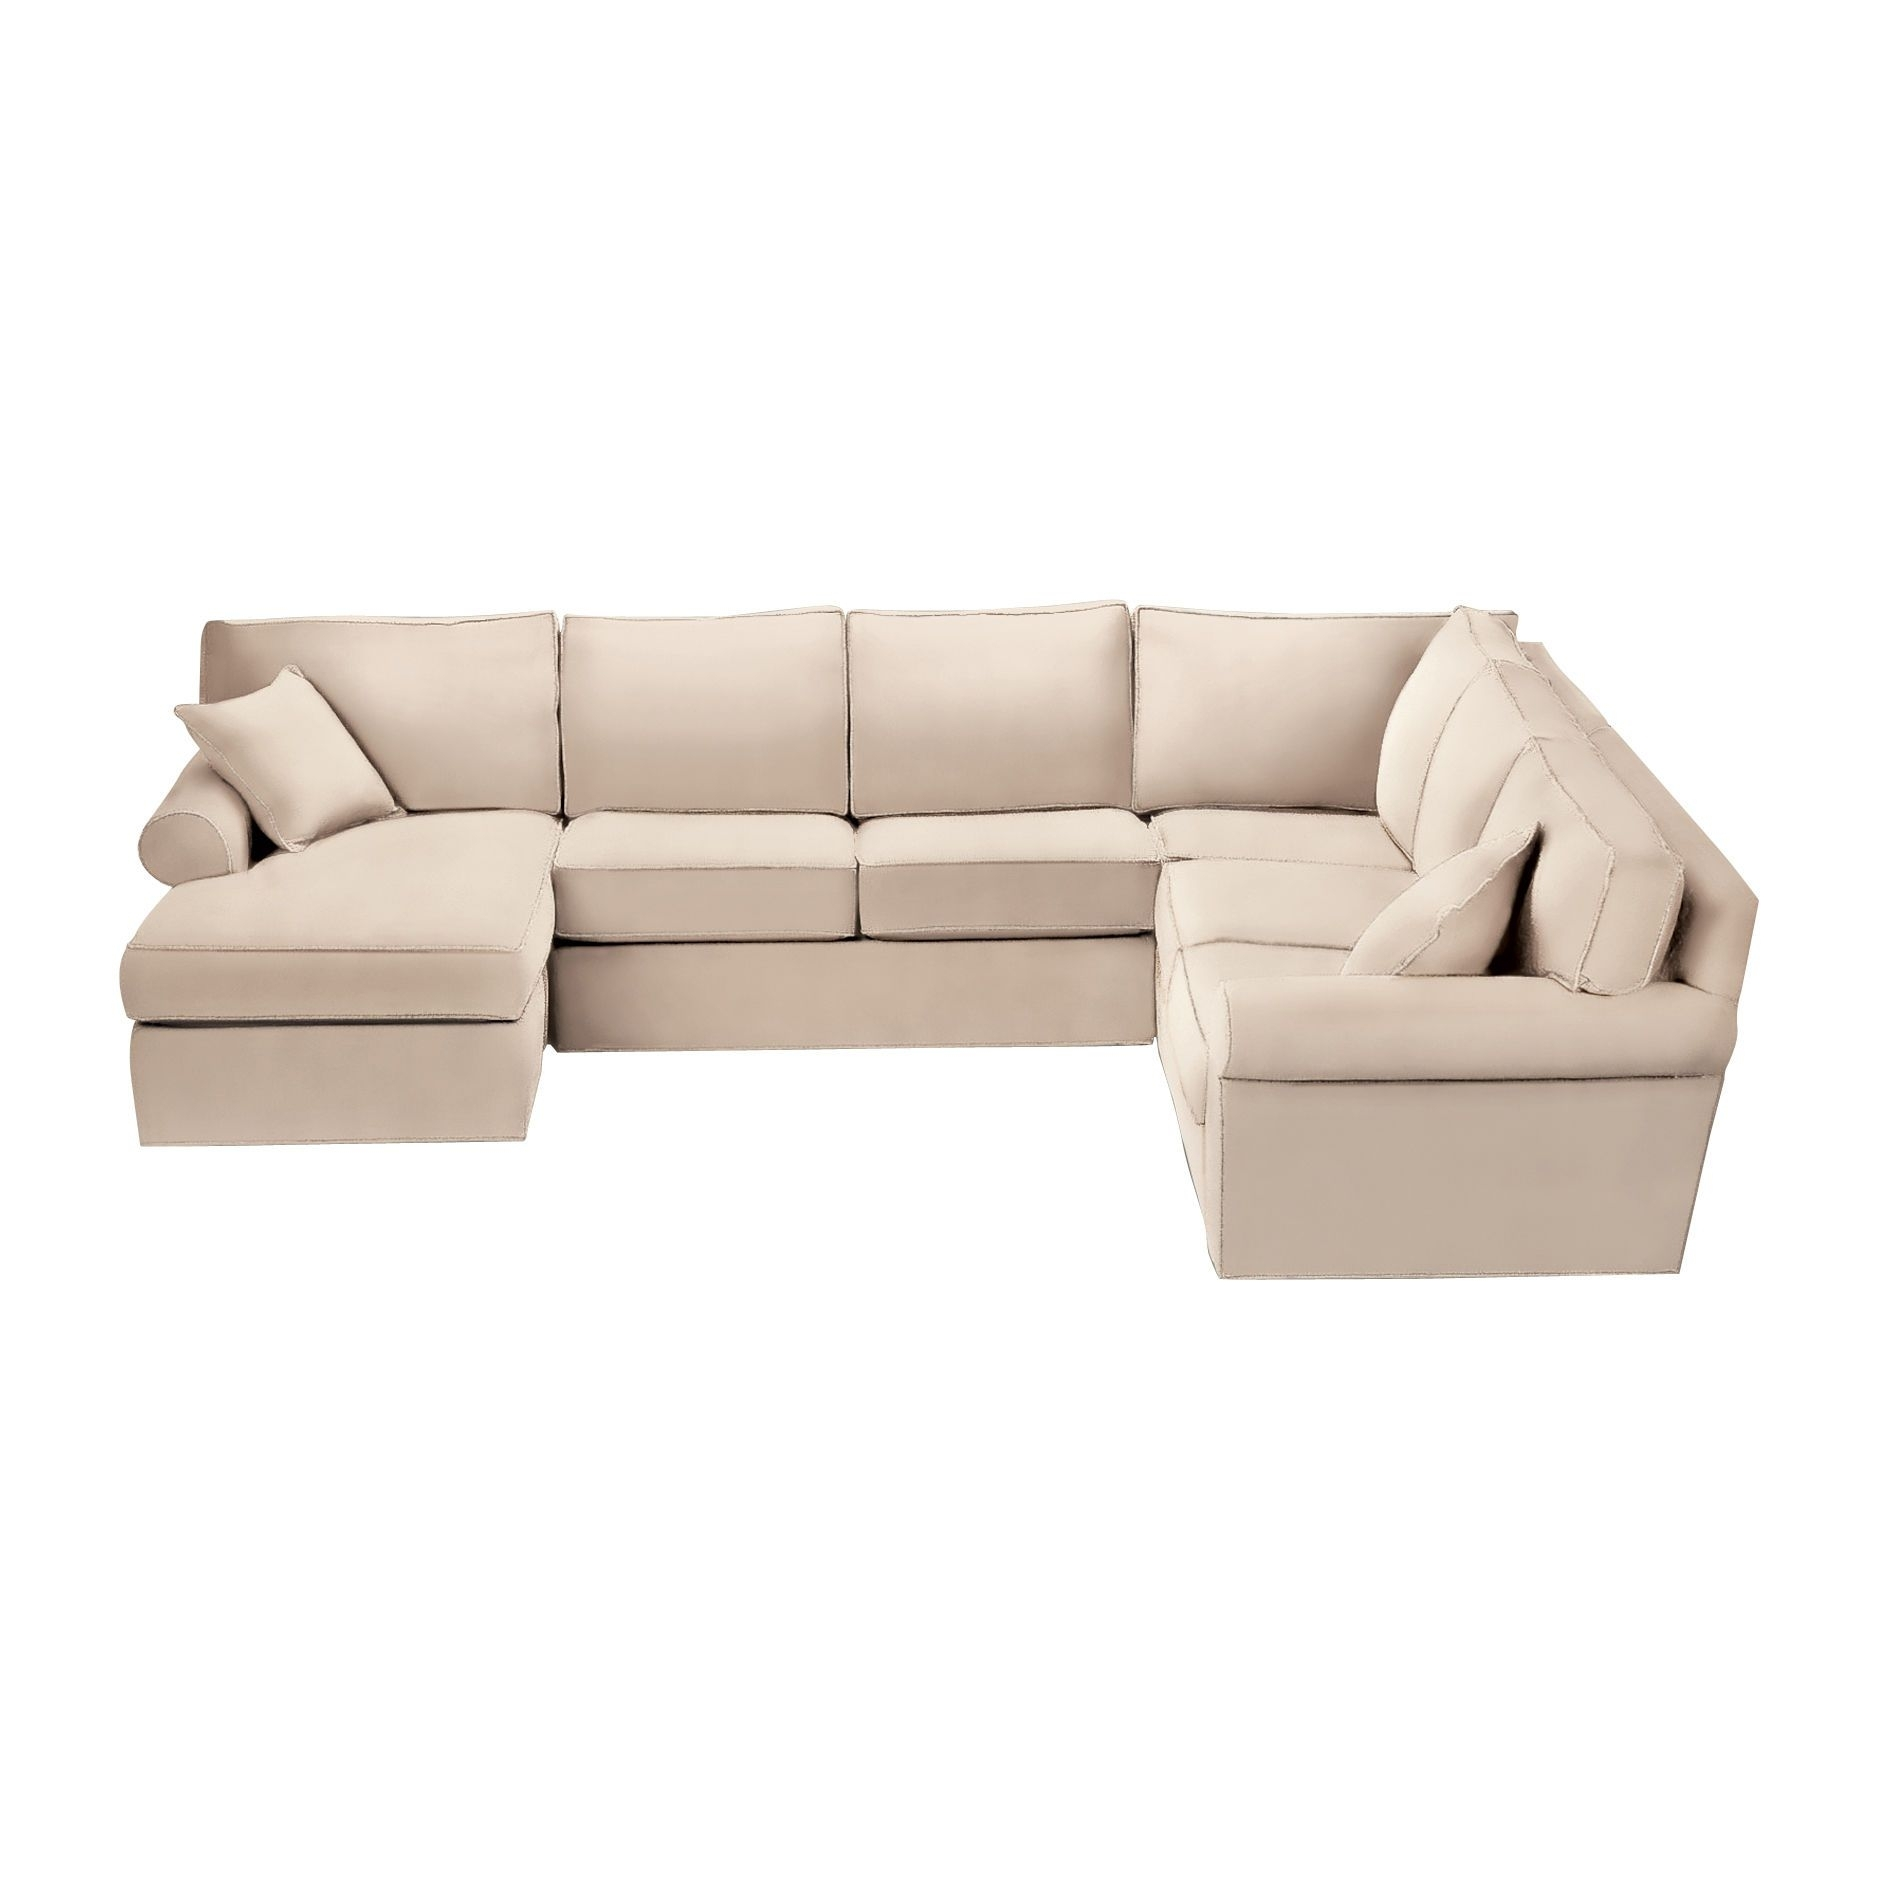 Norfolk Grey 3 Piece Sectional W/laf Chaise with regard to Norfolk Grey 3 Piece Sectionals With Laf Chaise